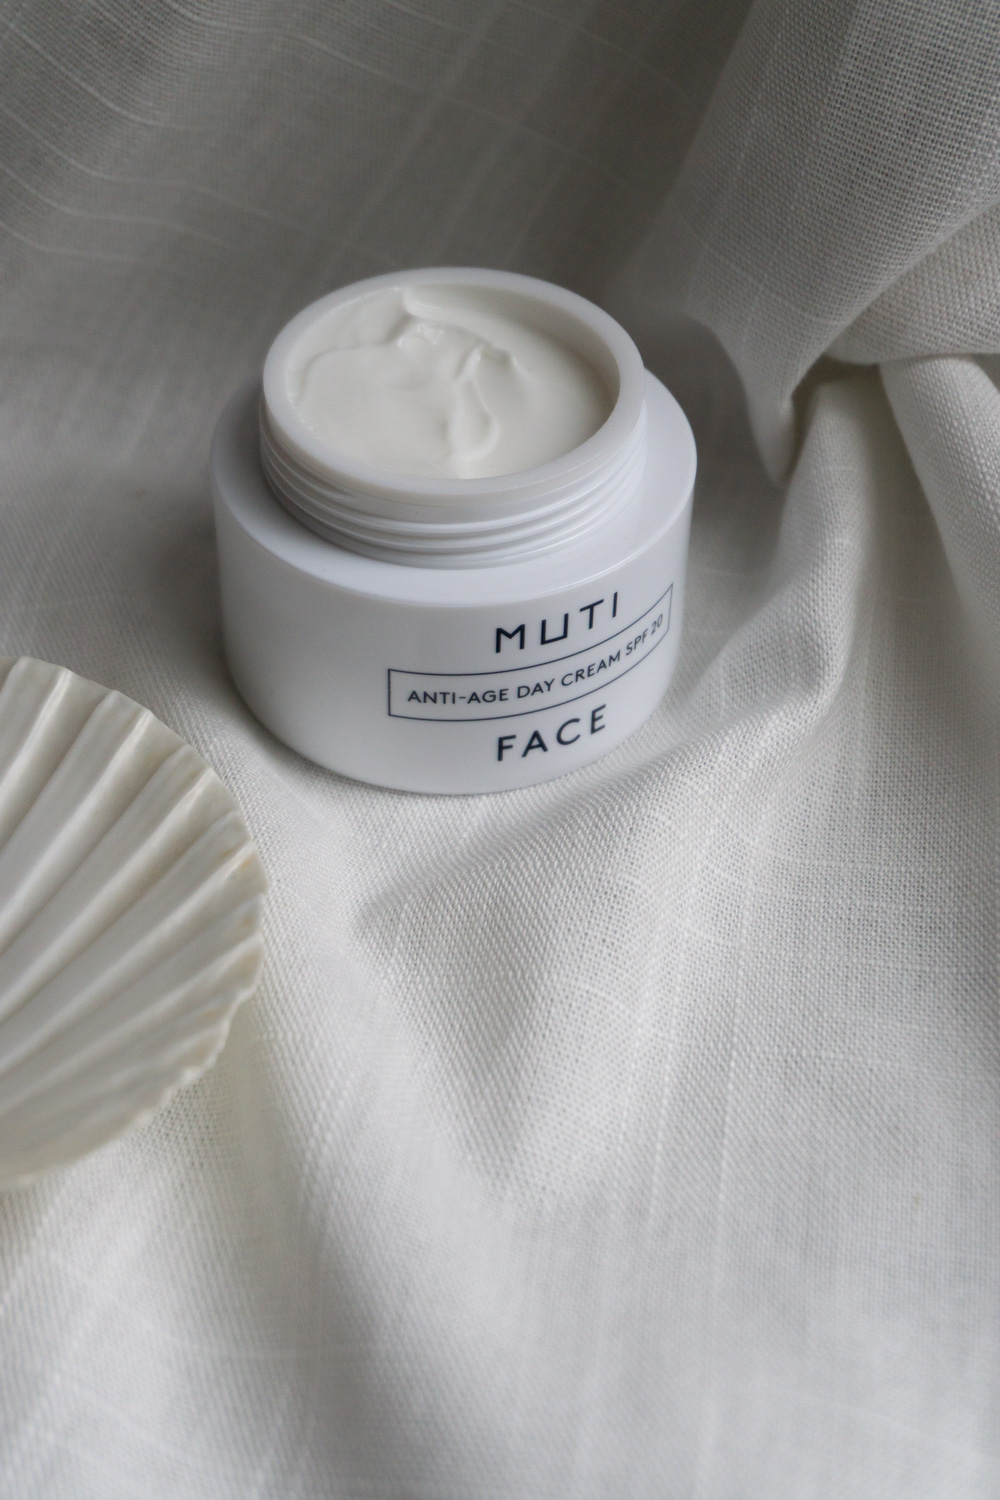 Muti Minimalist Skincare Natural Simple Skin Care Product Photography Winter Beauty Rg Daily Blog 66 Rg Daily